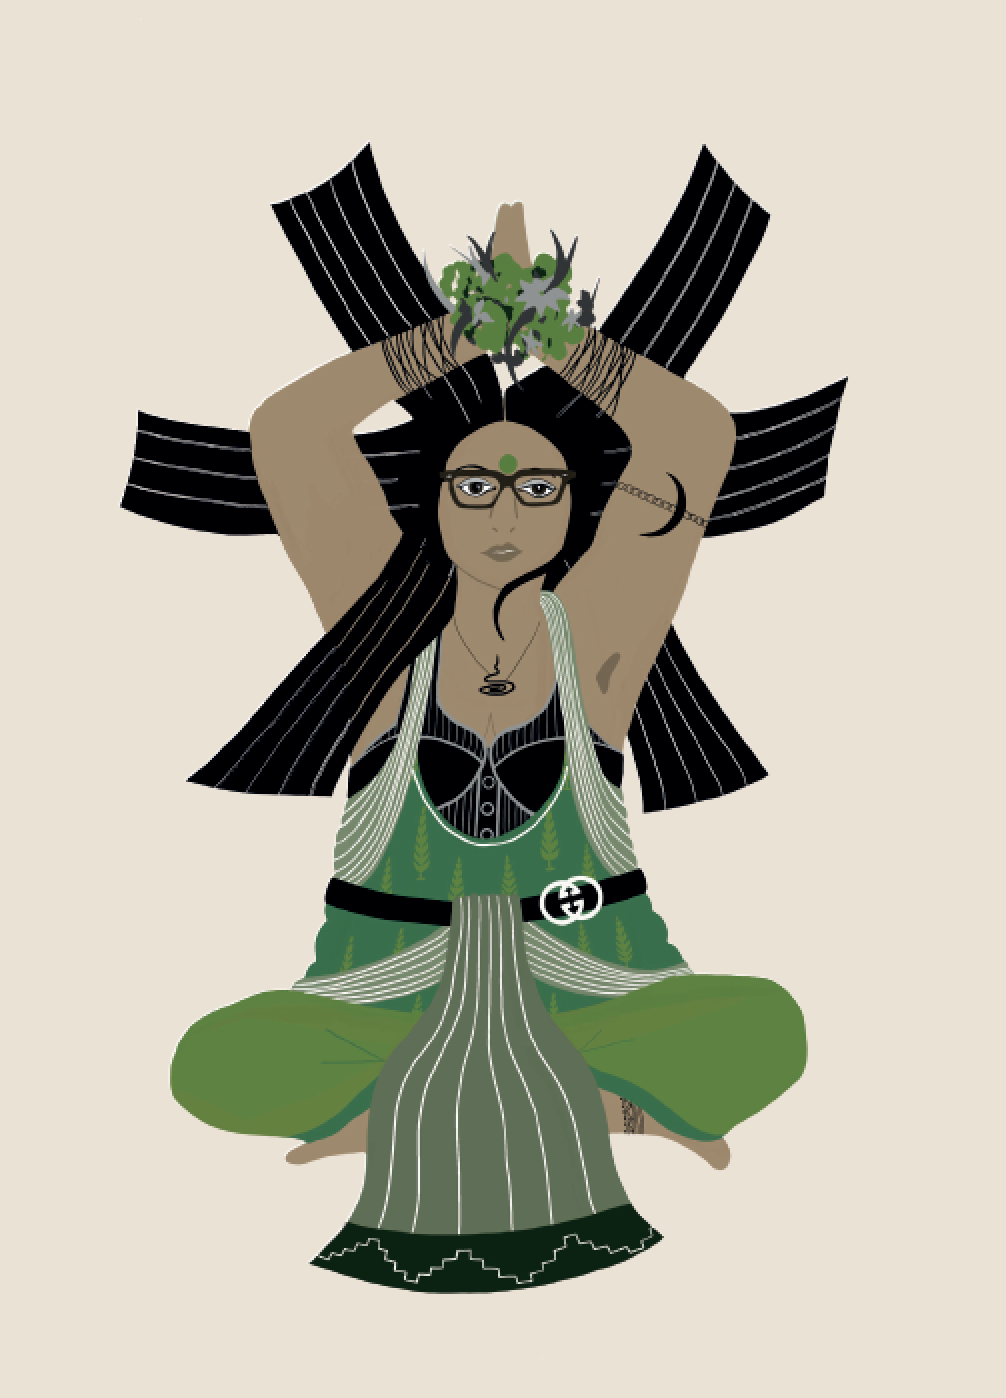 2019. Sukh ā sana (Easy Pose) Digital print on paper 5 in. x 7 in.  Practiced wearing a Tree-of-Life embroidered undershirt over a corset, a lungi and dupatta cinched at the waist, horn-rimmed eyeglasses, and a balsamic moon bajuband.   Purchase